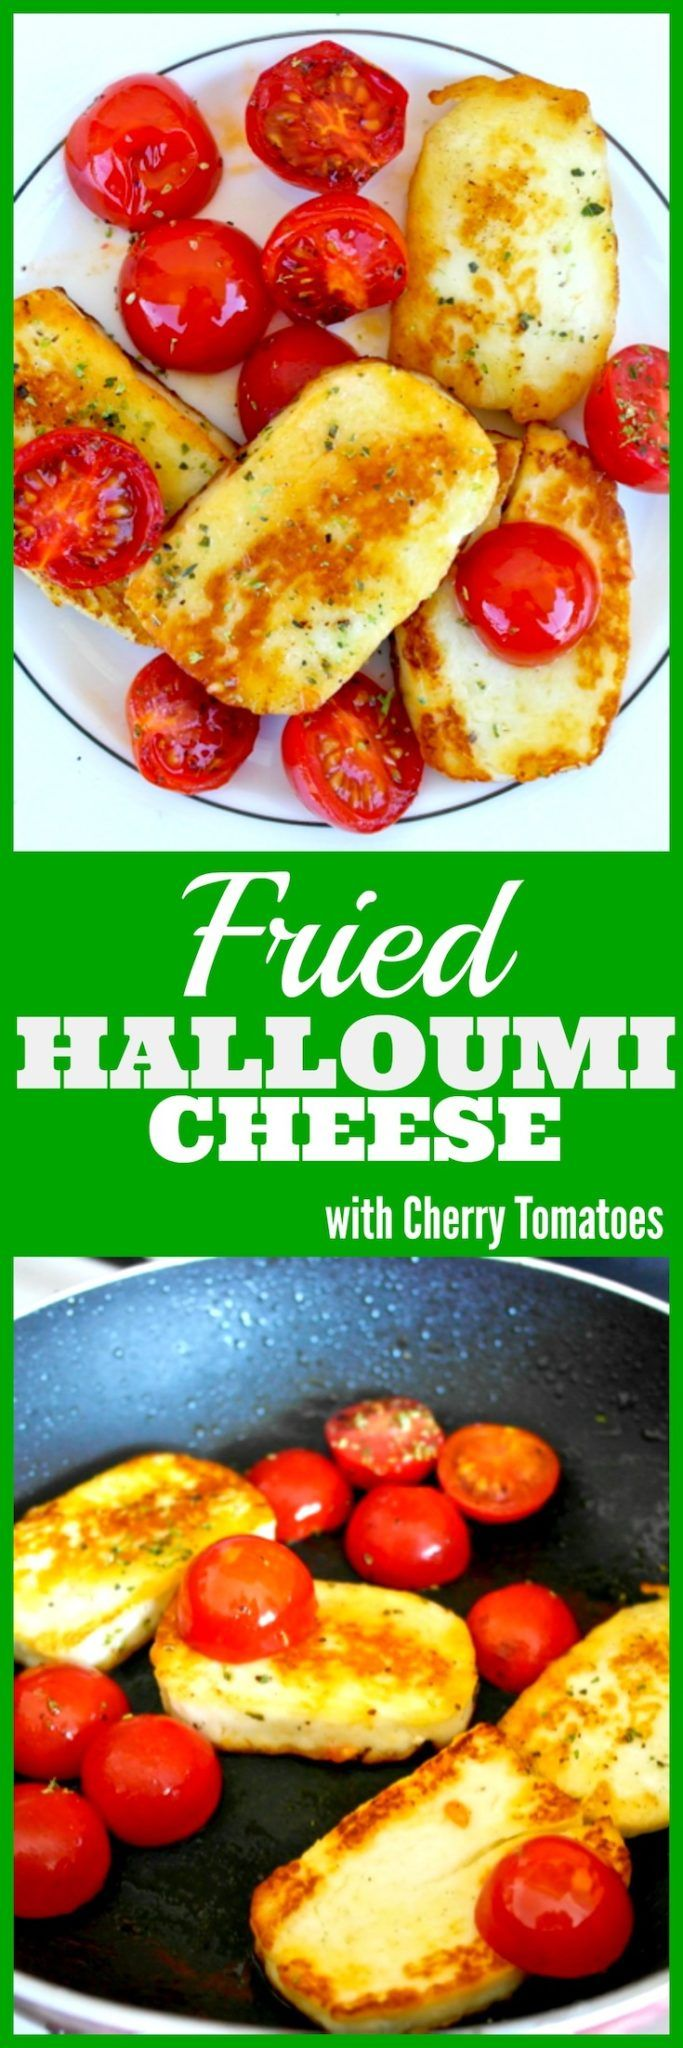 Fried Halloumi Cheese with Cherry Tomatoes | Olive Tomato This cheesy mediterranean appetizer is ready in 5 minutes olivetomato.com #cheese